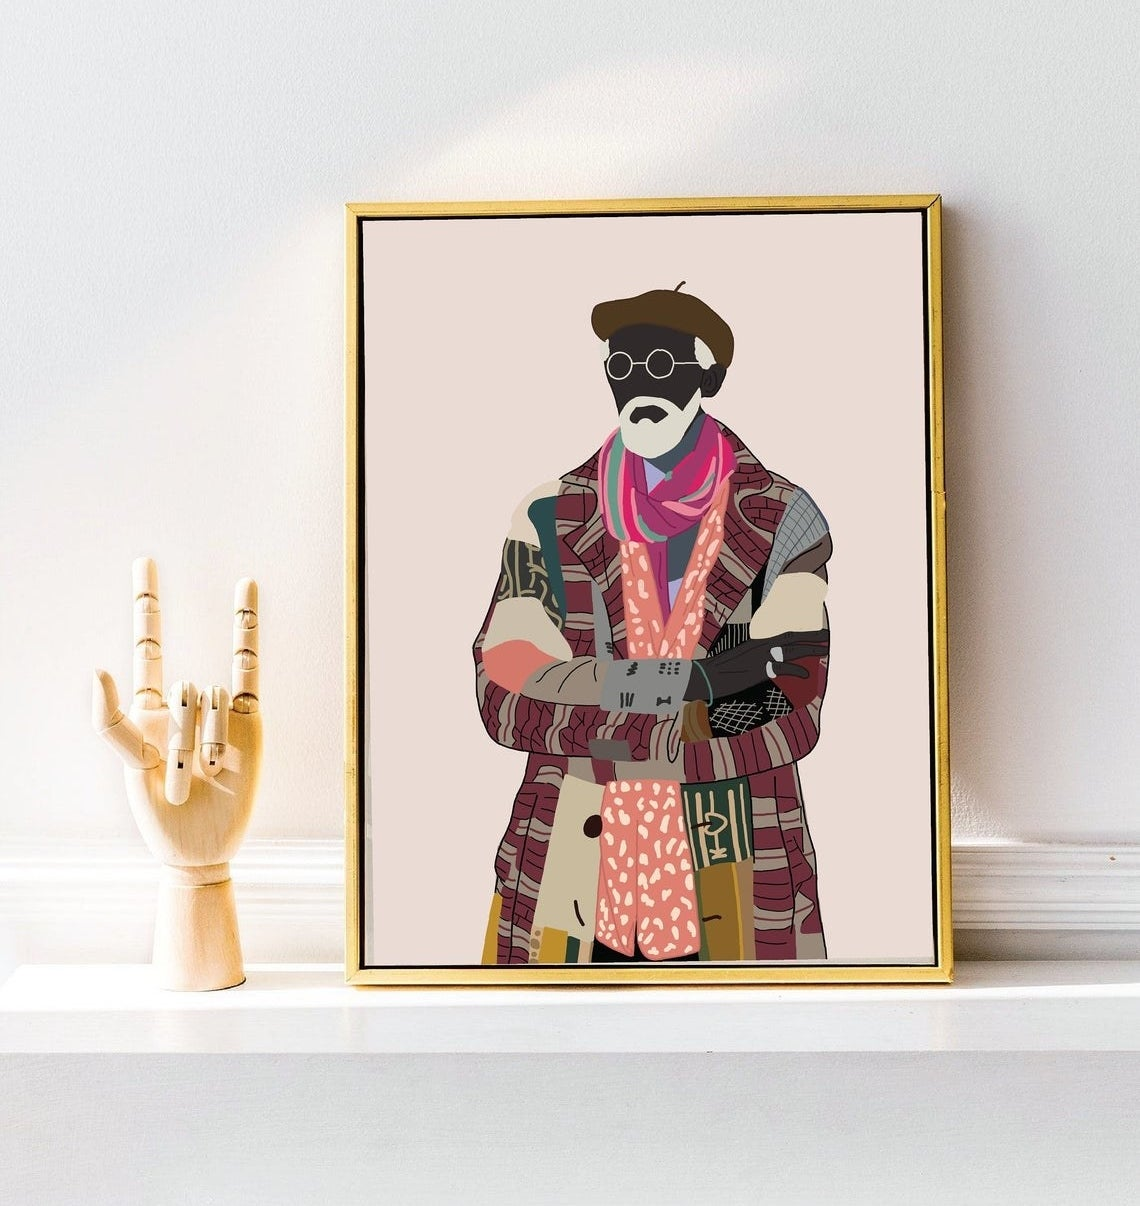 Illustrated print of an elderly man with a gray beard and a super colorful patchwork jacket, with a patterned shirt and colorful scarf underneath